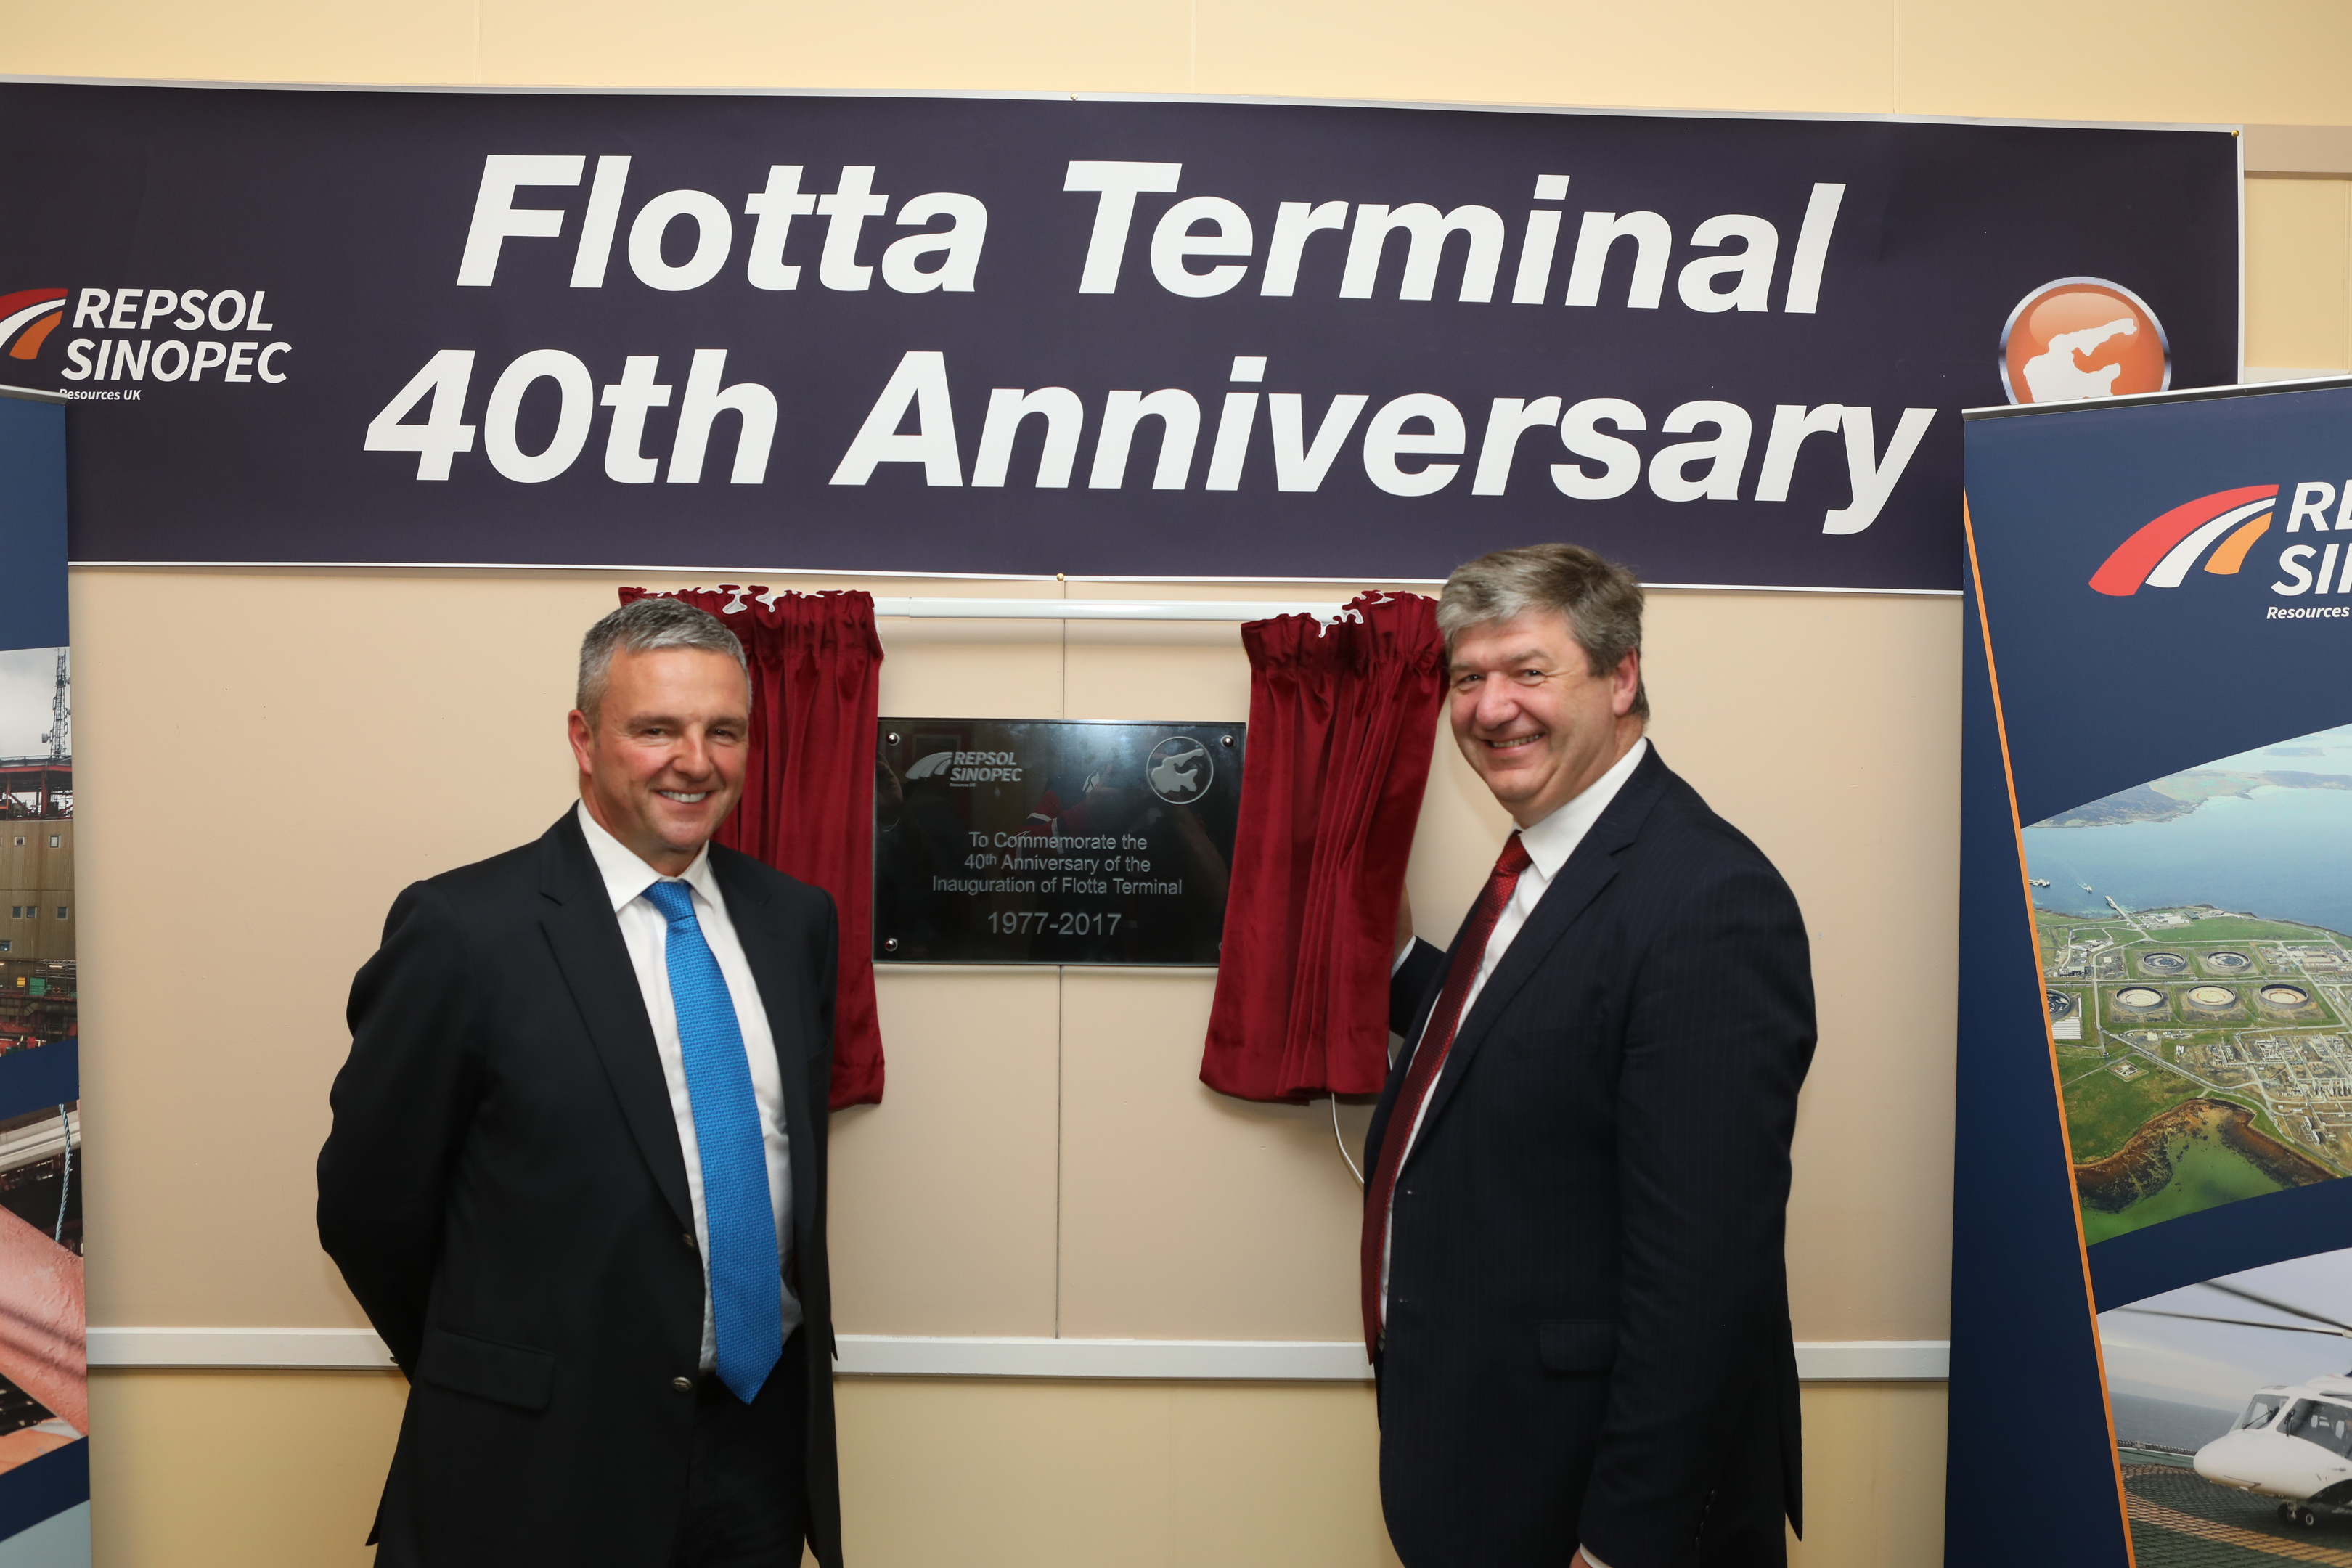 RSRUK managing director Bill Dunnett, right, and MP for Orkney and Shetland Alistair Carmichael unveil the plaque celebrating the Flotta terminal's 40th birthday.